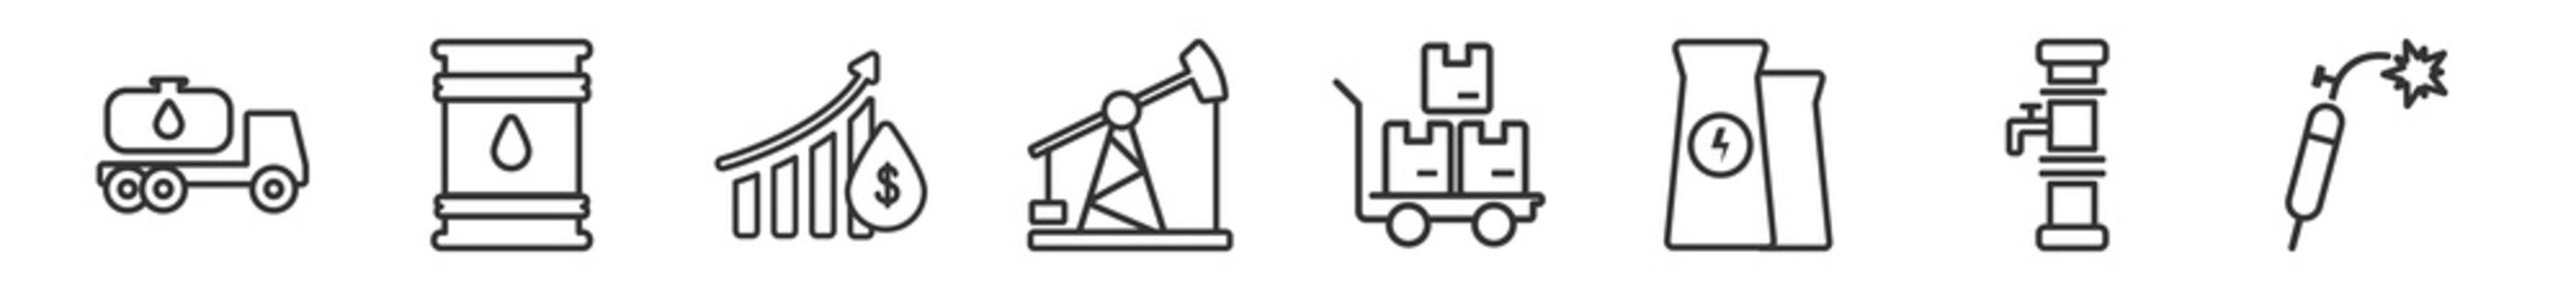 outline set of industry line icons. linear vector icons such as oil tanker, barrel, oil price, pump jack, pushcart, welding. vector illustration.